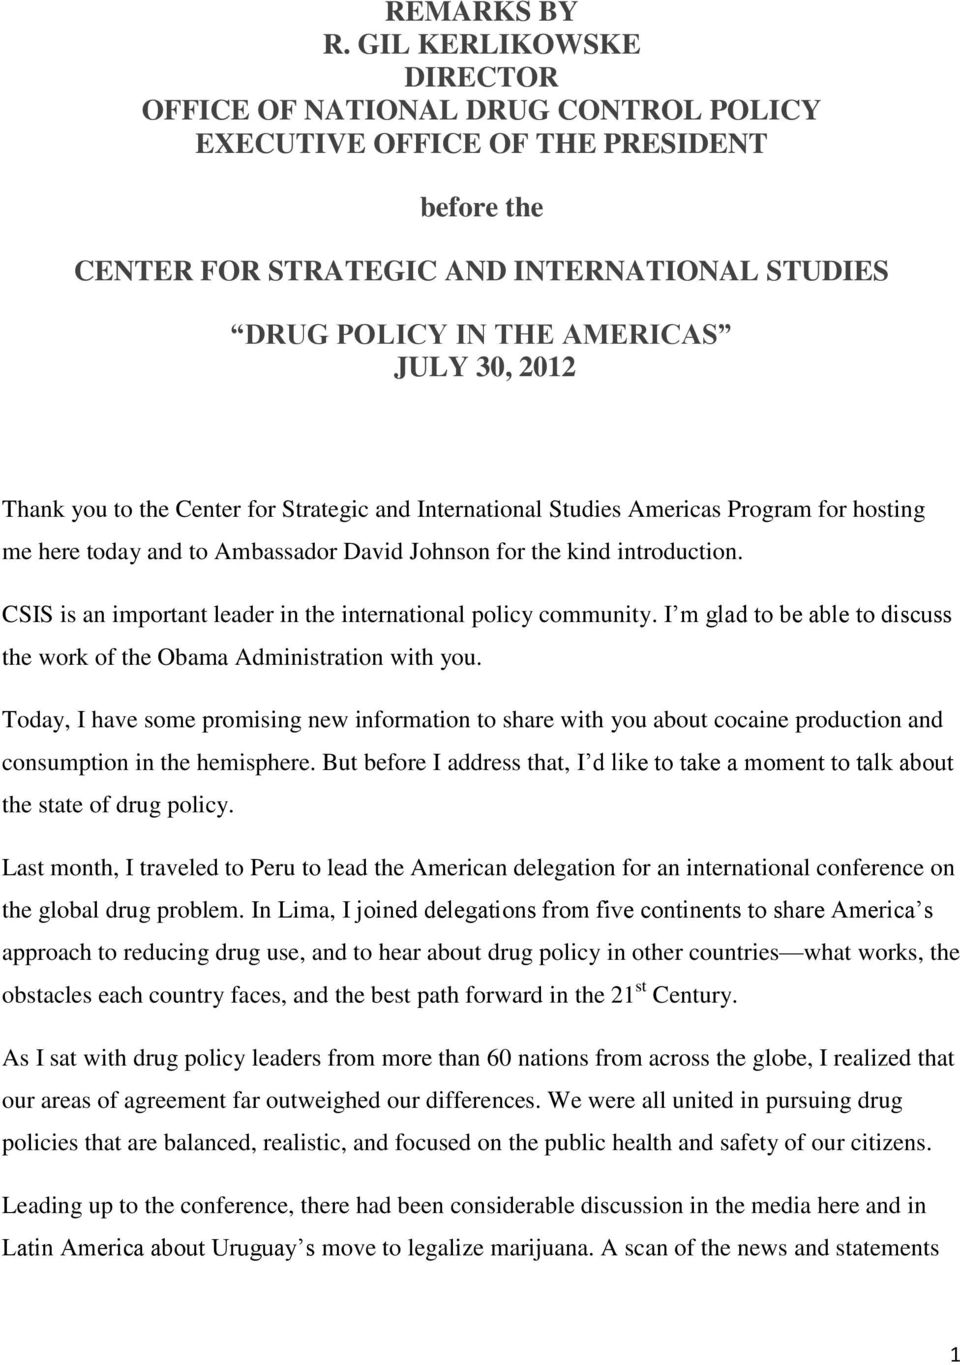 Thank you to the Center for Strategic and International Studies Americas Program for hosting me here today and to Ambassador David Johnson for the kind introduction.